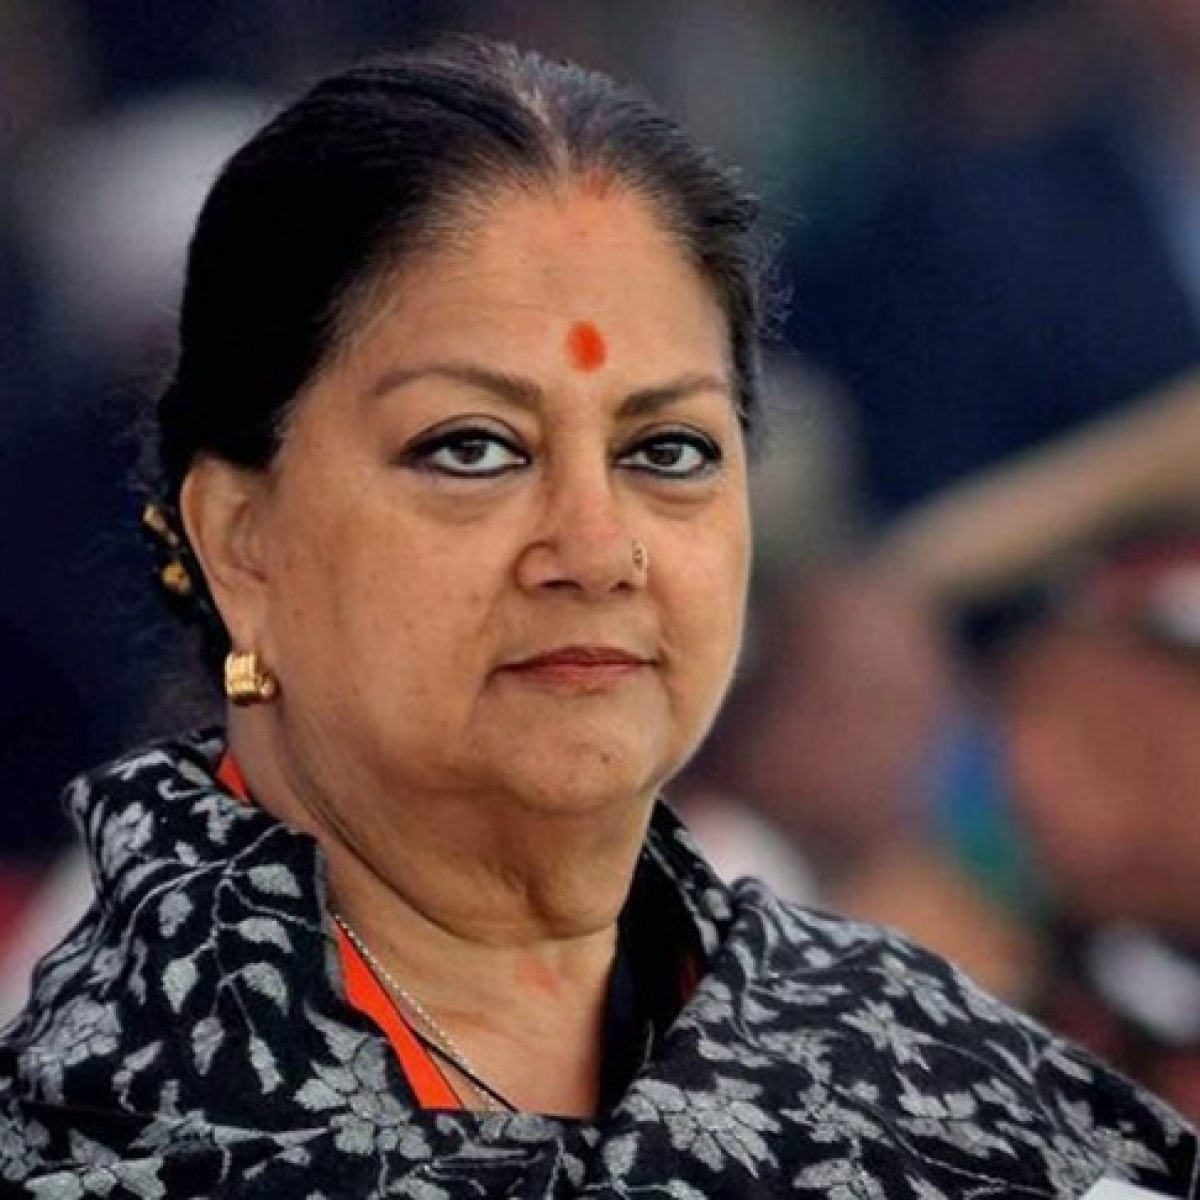 Rajasthan: Vasundhara Raje supporters lobby for her as 2023 CM face